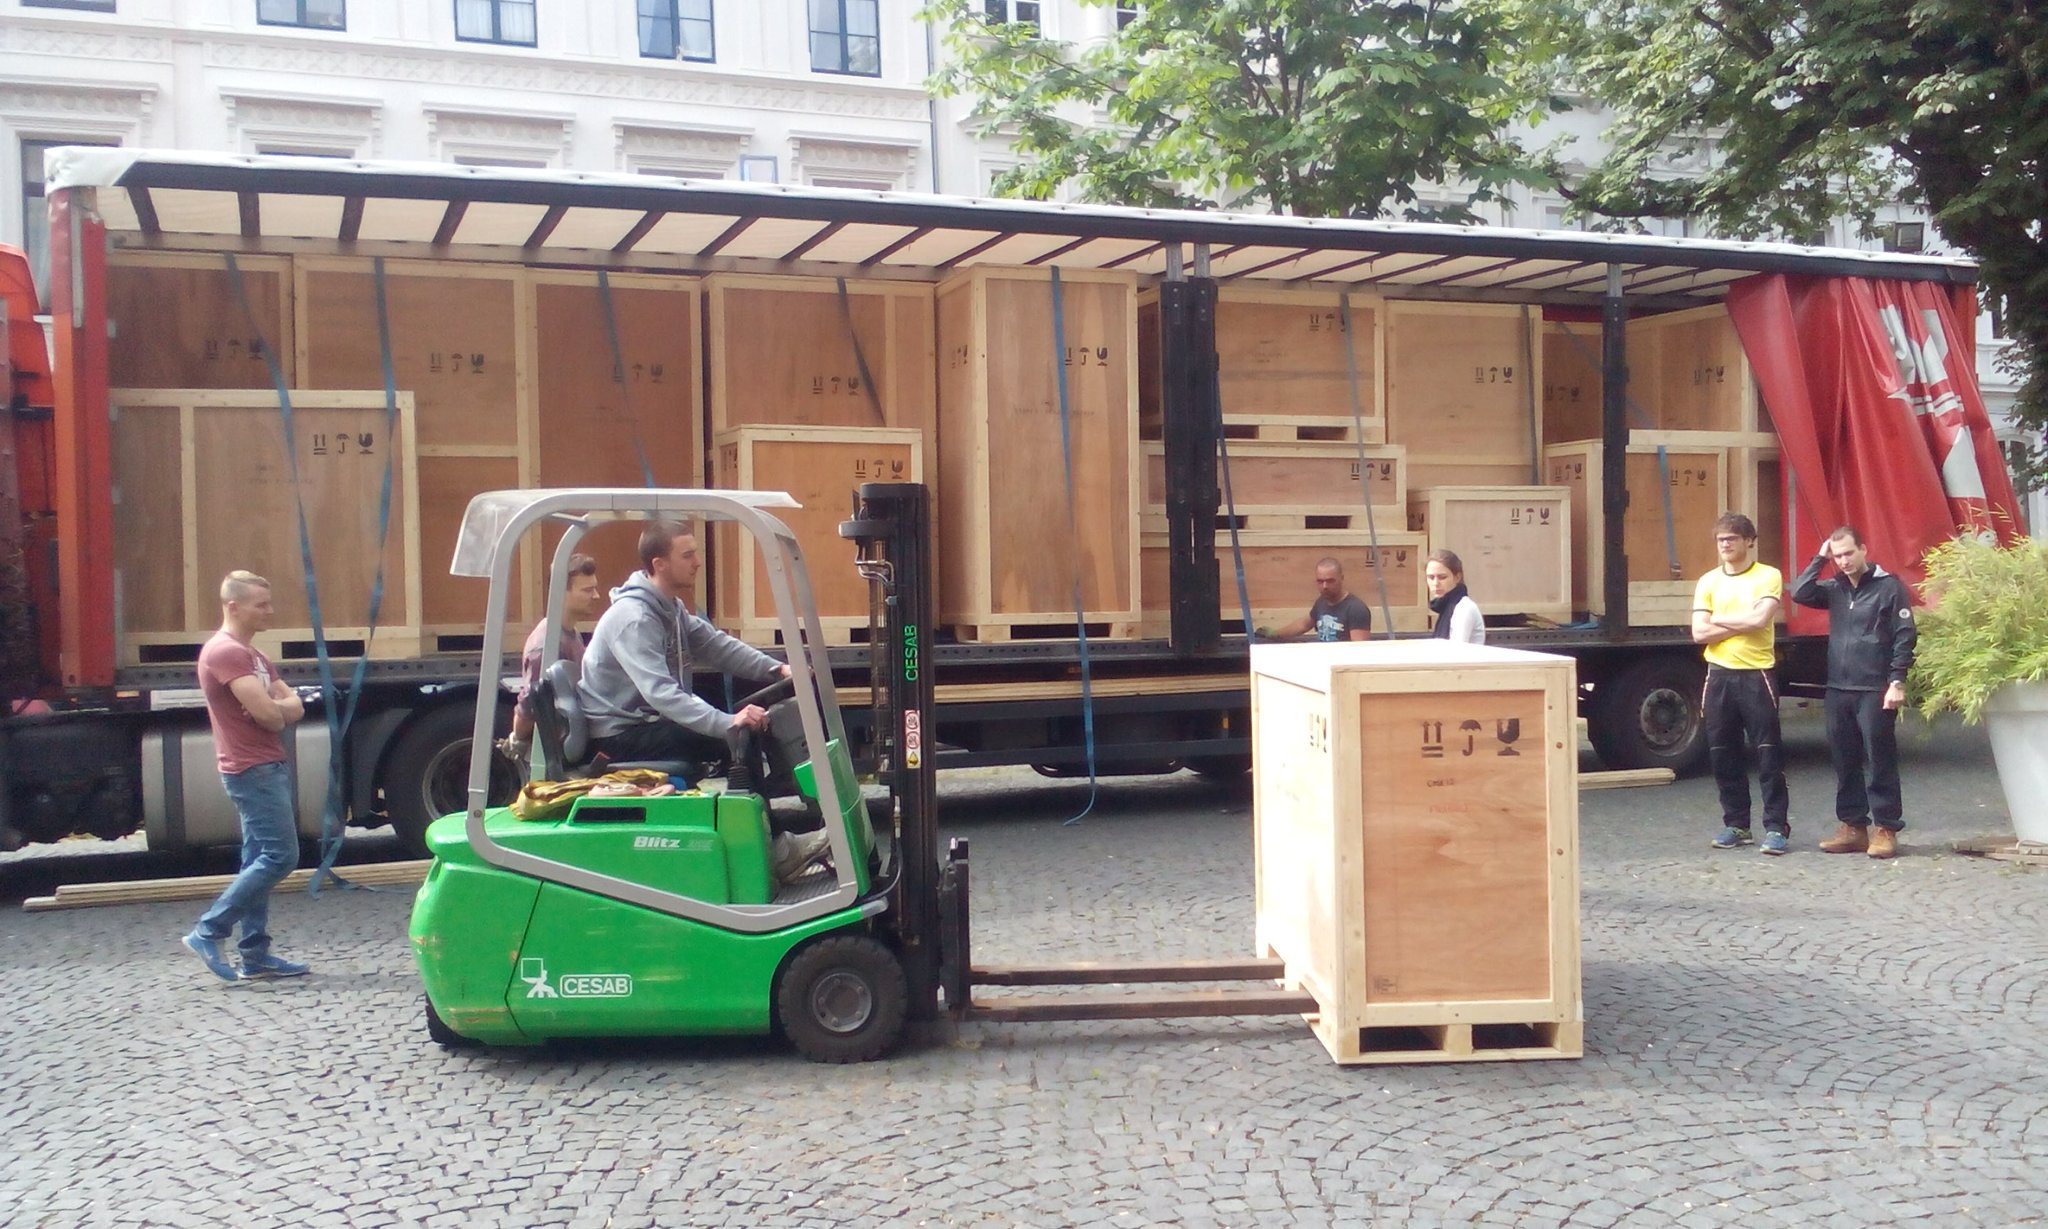 Welcome to Bonn #BeyondTheLab! From the truck to the museum, our European exhibition on tour https://t.co/IBQFJHX4nW https://t.co/LmM08IEmIS